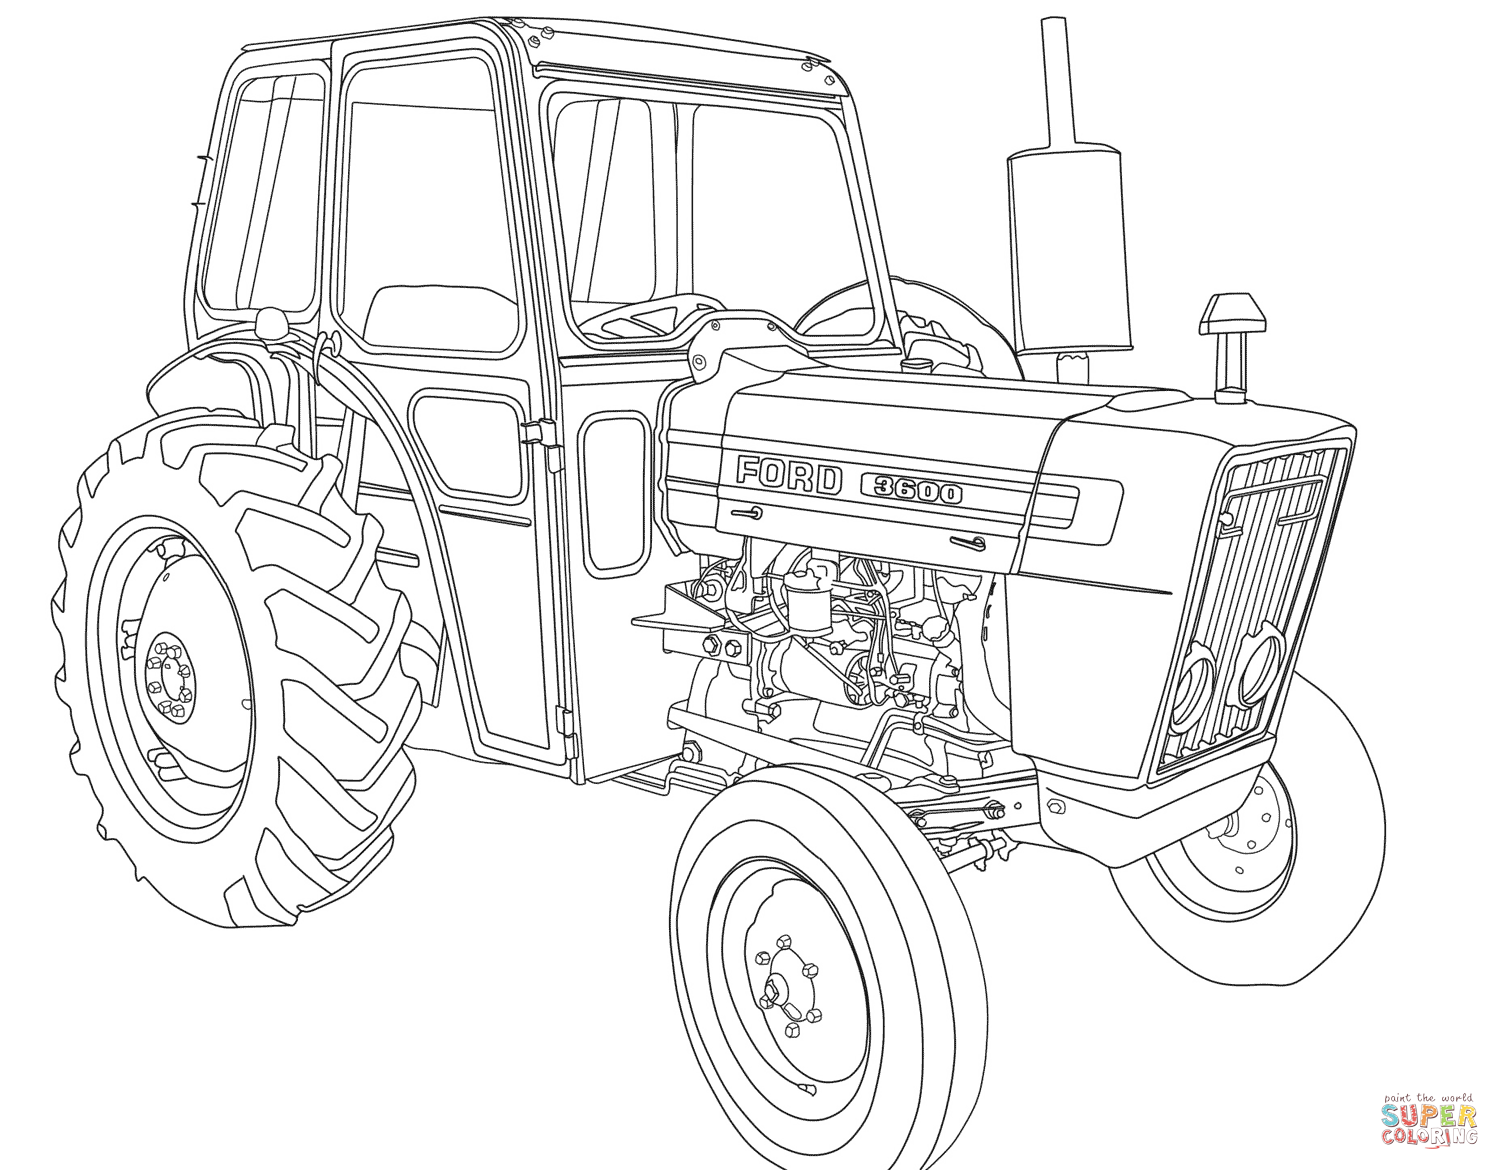 Tractor Ford 3600 Super Coloring Cars Coloring Pages Tractor Coloring Pages Truck Coloring Pages